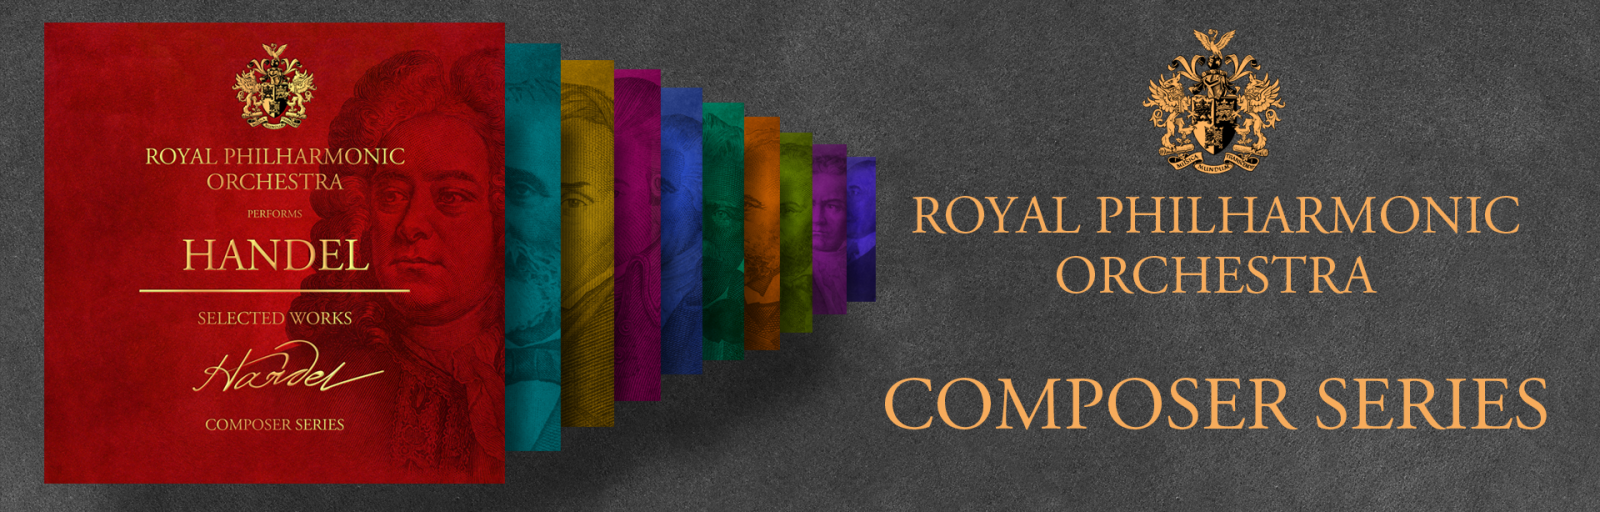 Royal Philharmonic Orchestra Composer Series